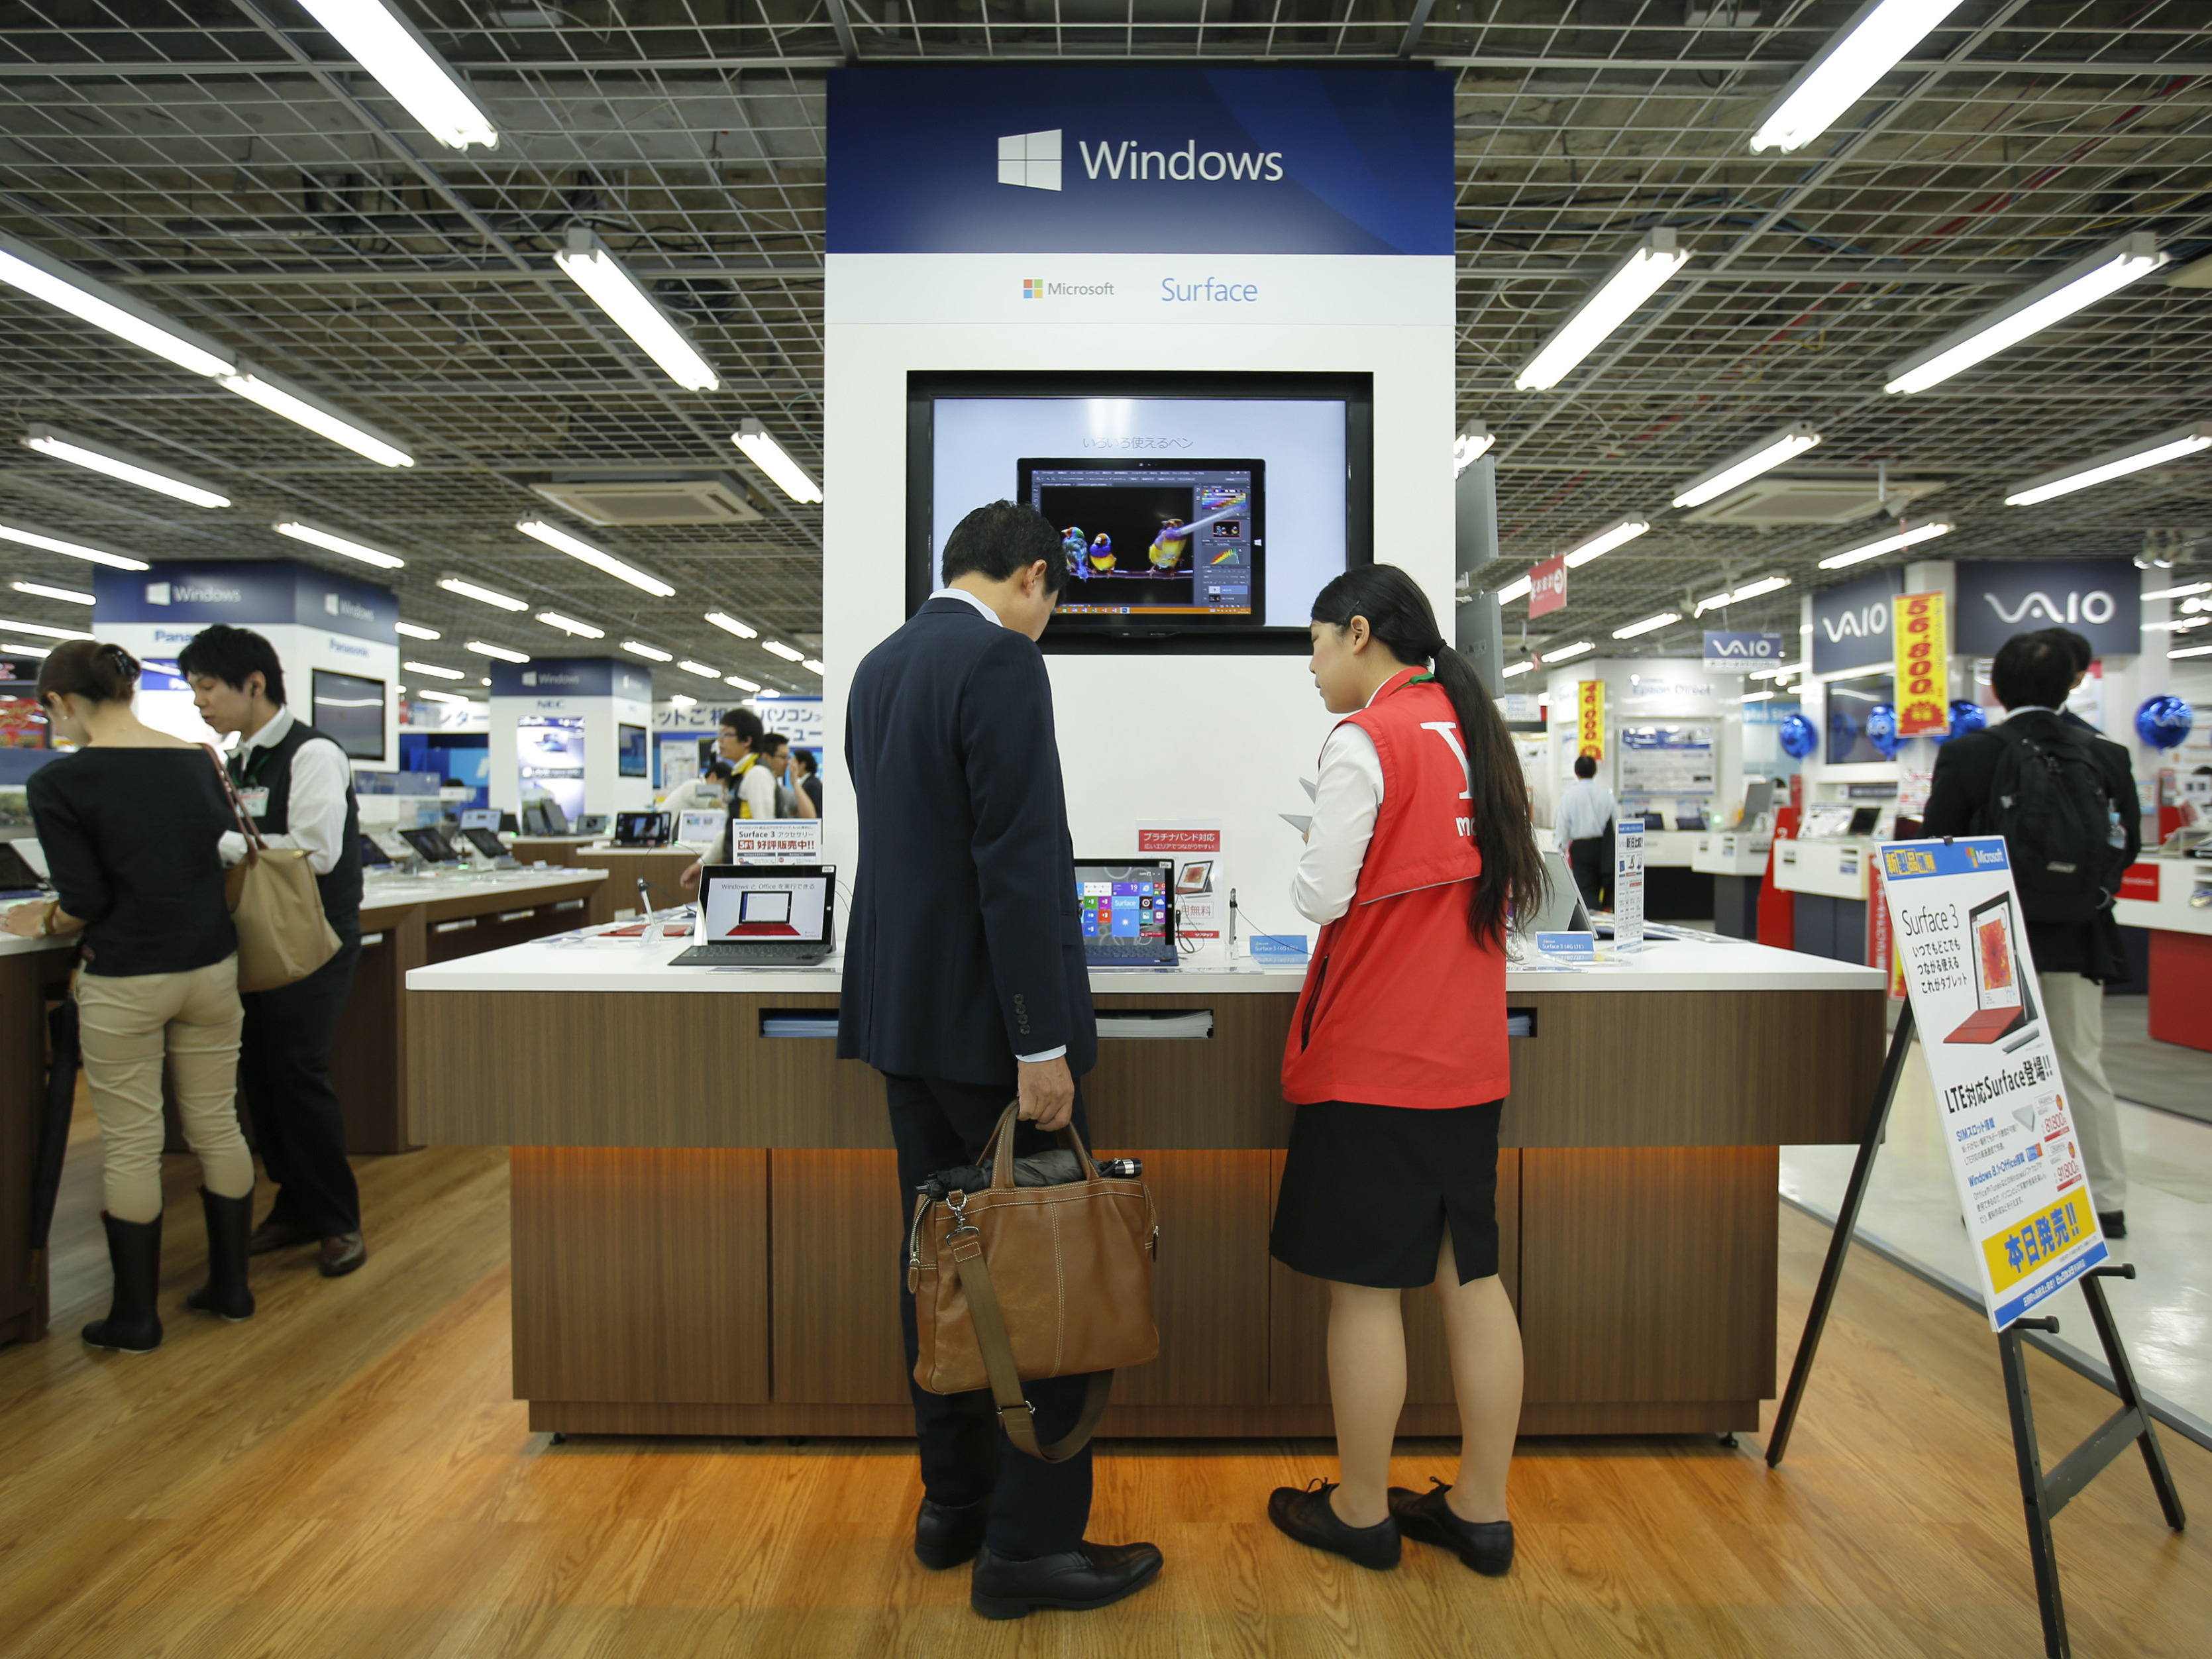 4-Day Workweek Boosted Workers' Productivity By 40%, Microsoft Japan Says